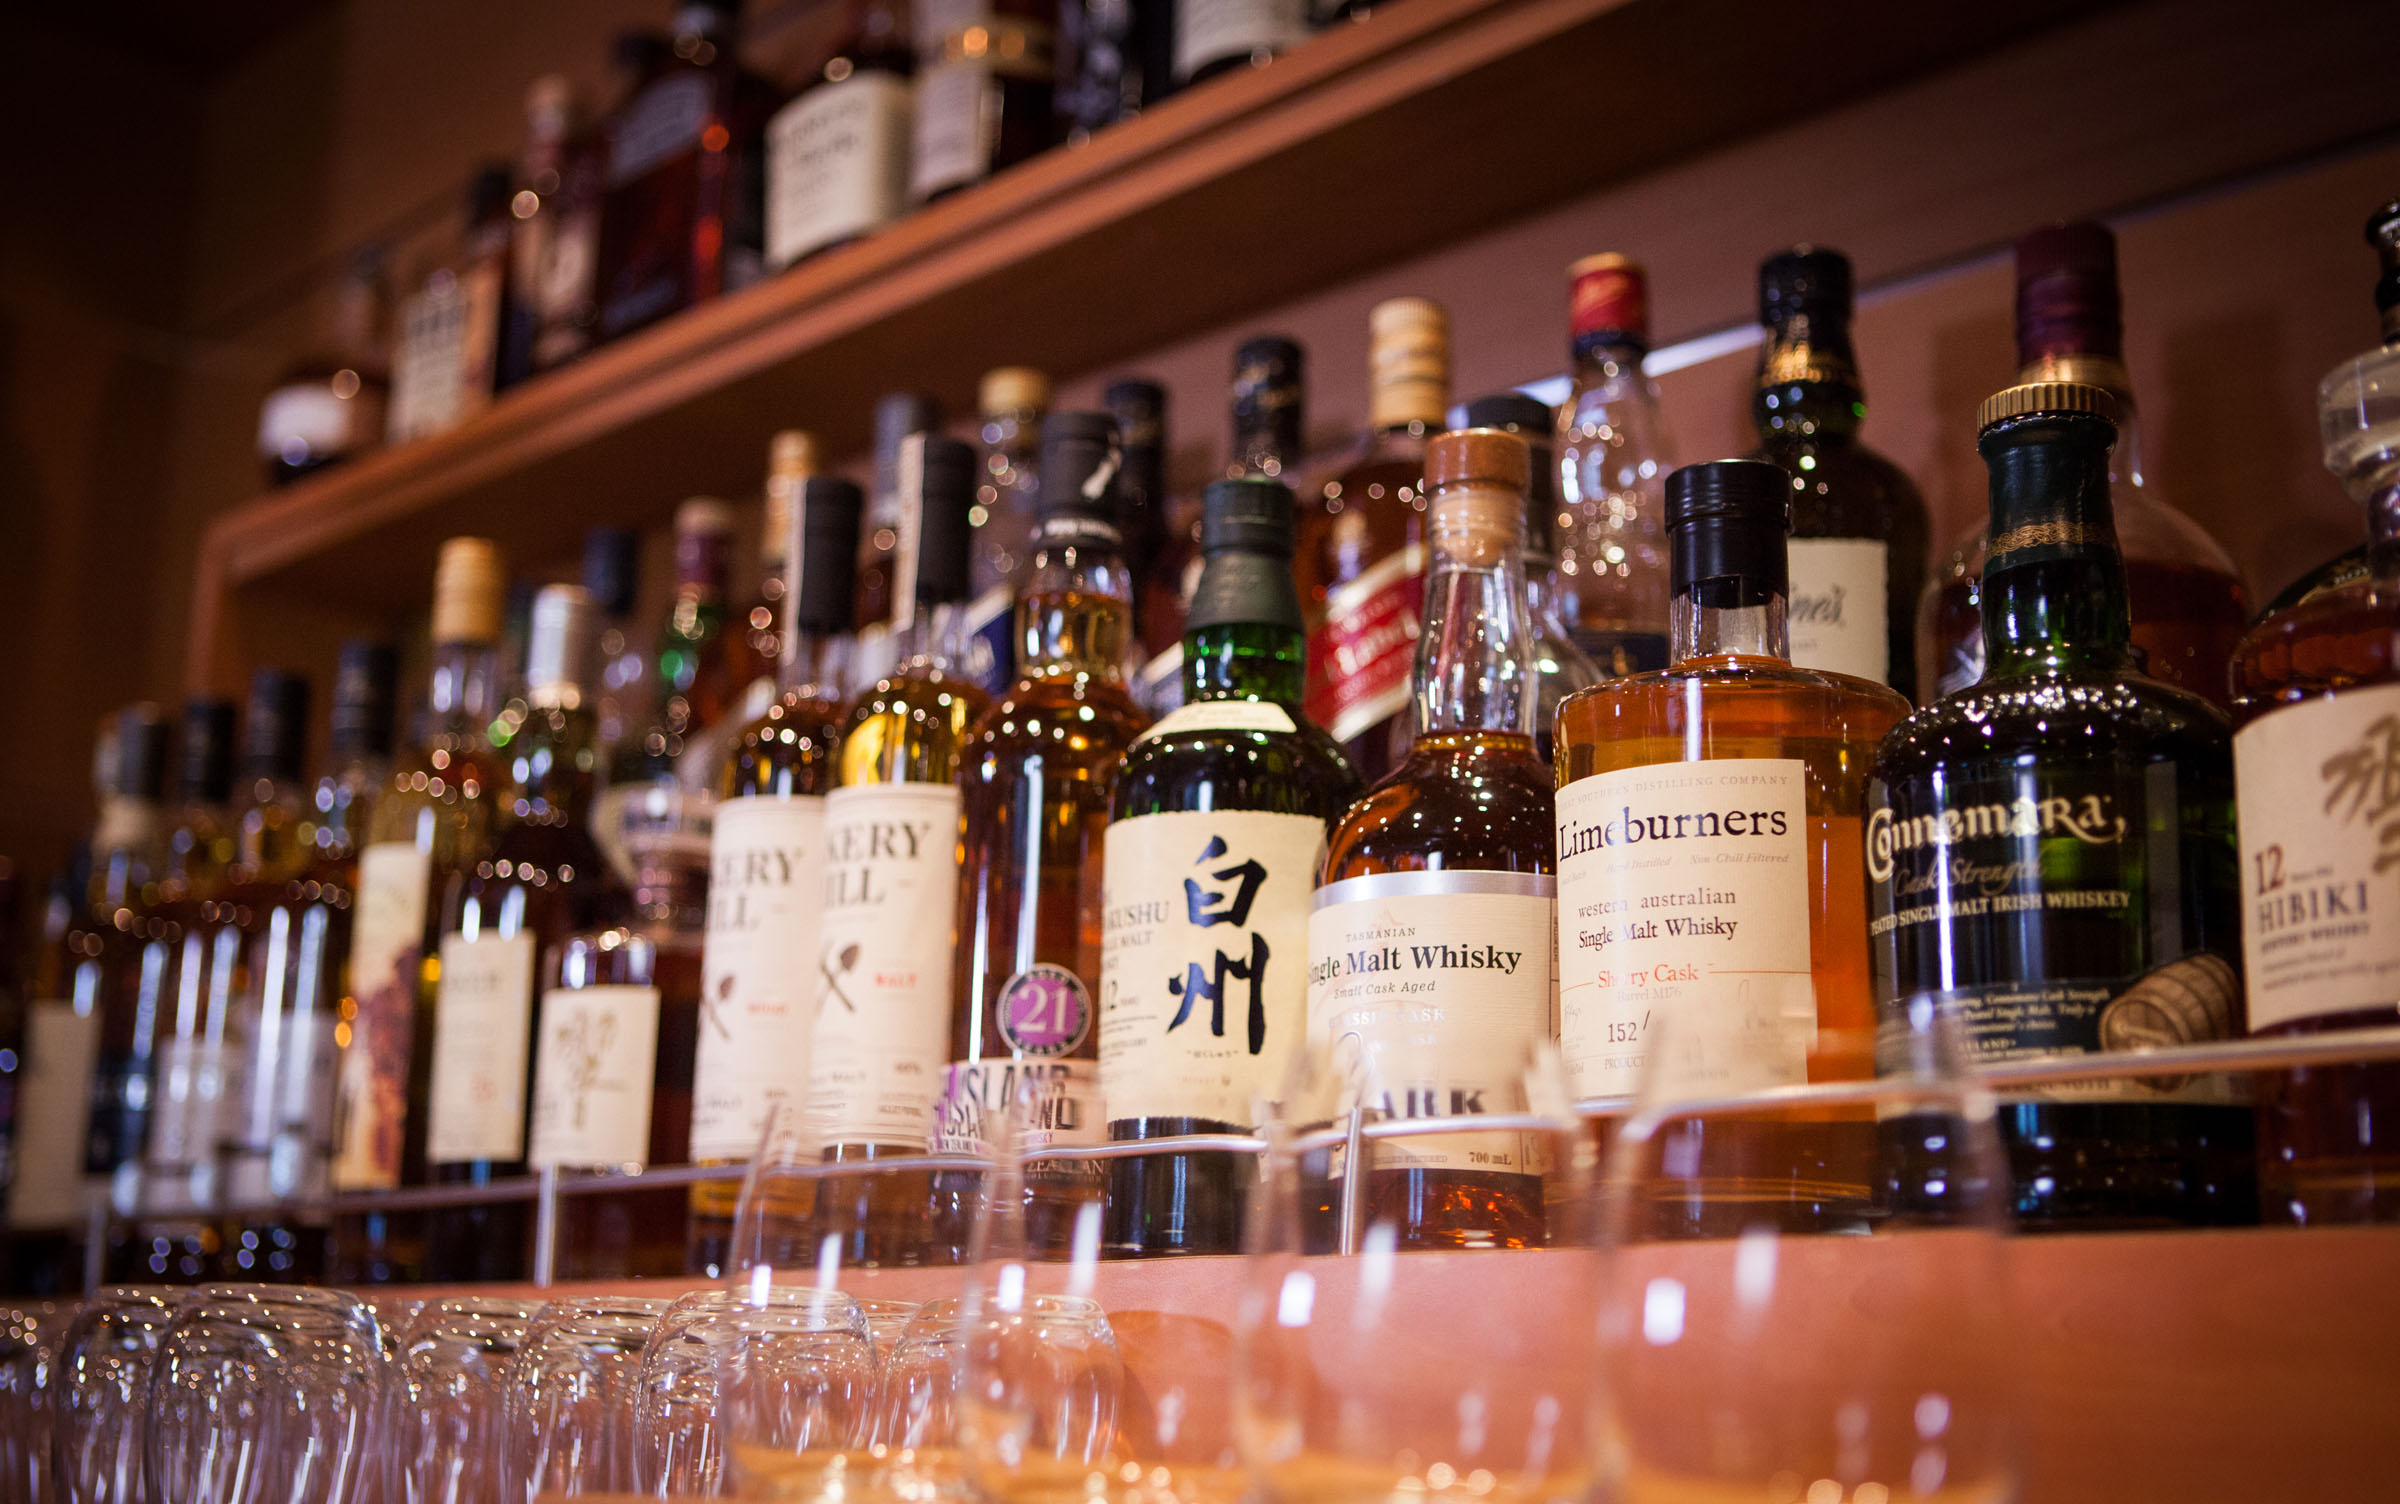 Dawn Princess Whisky Bar selection email